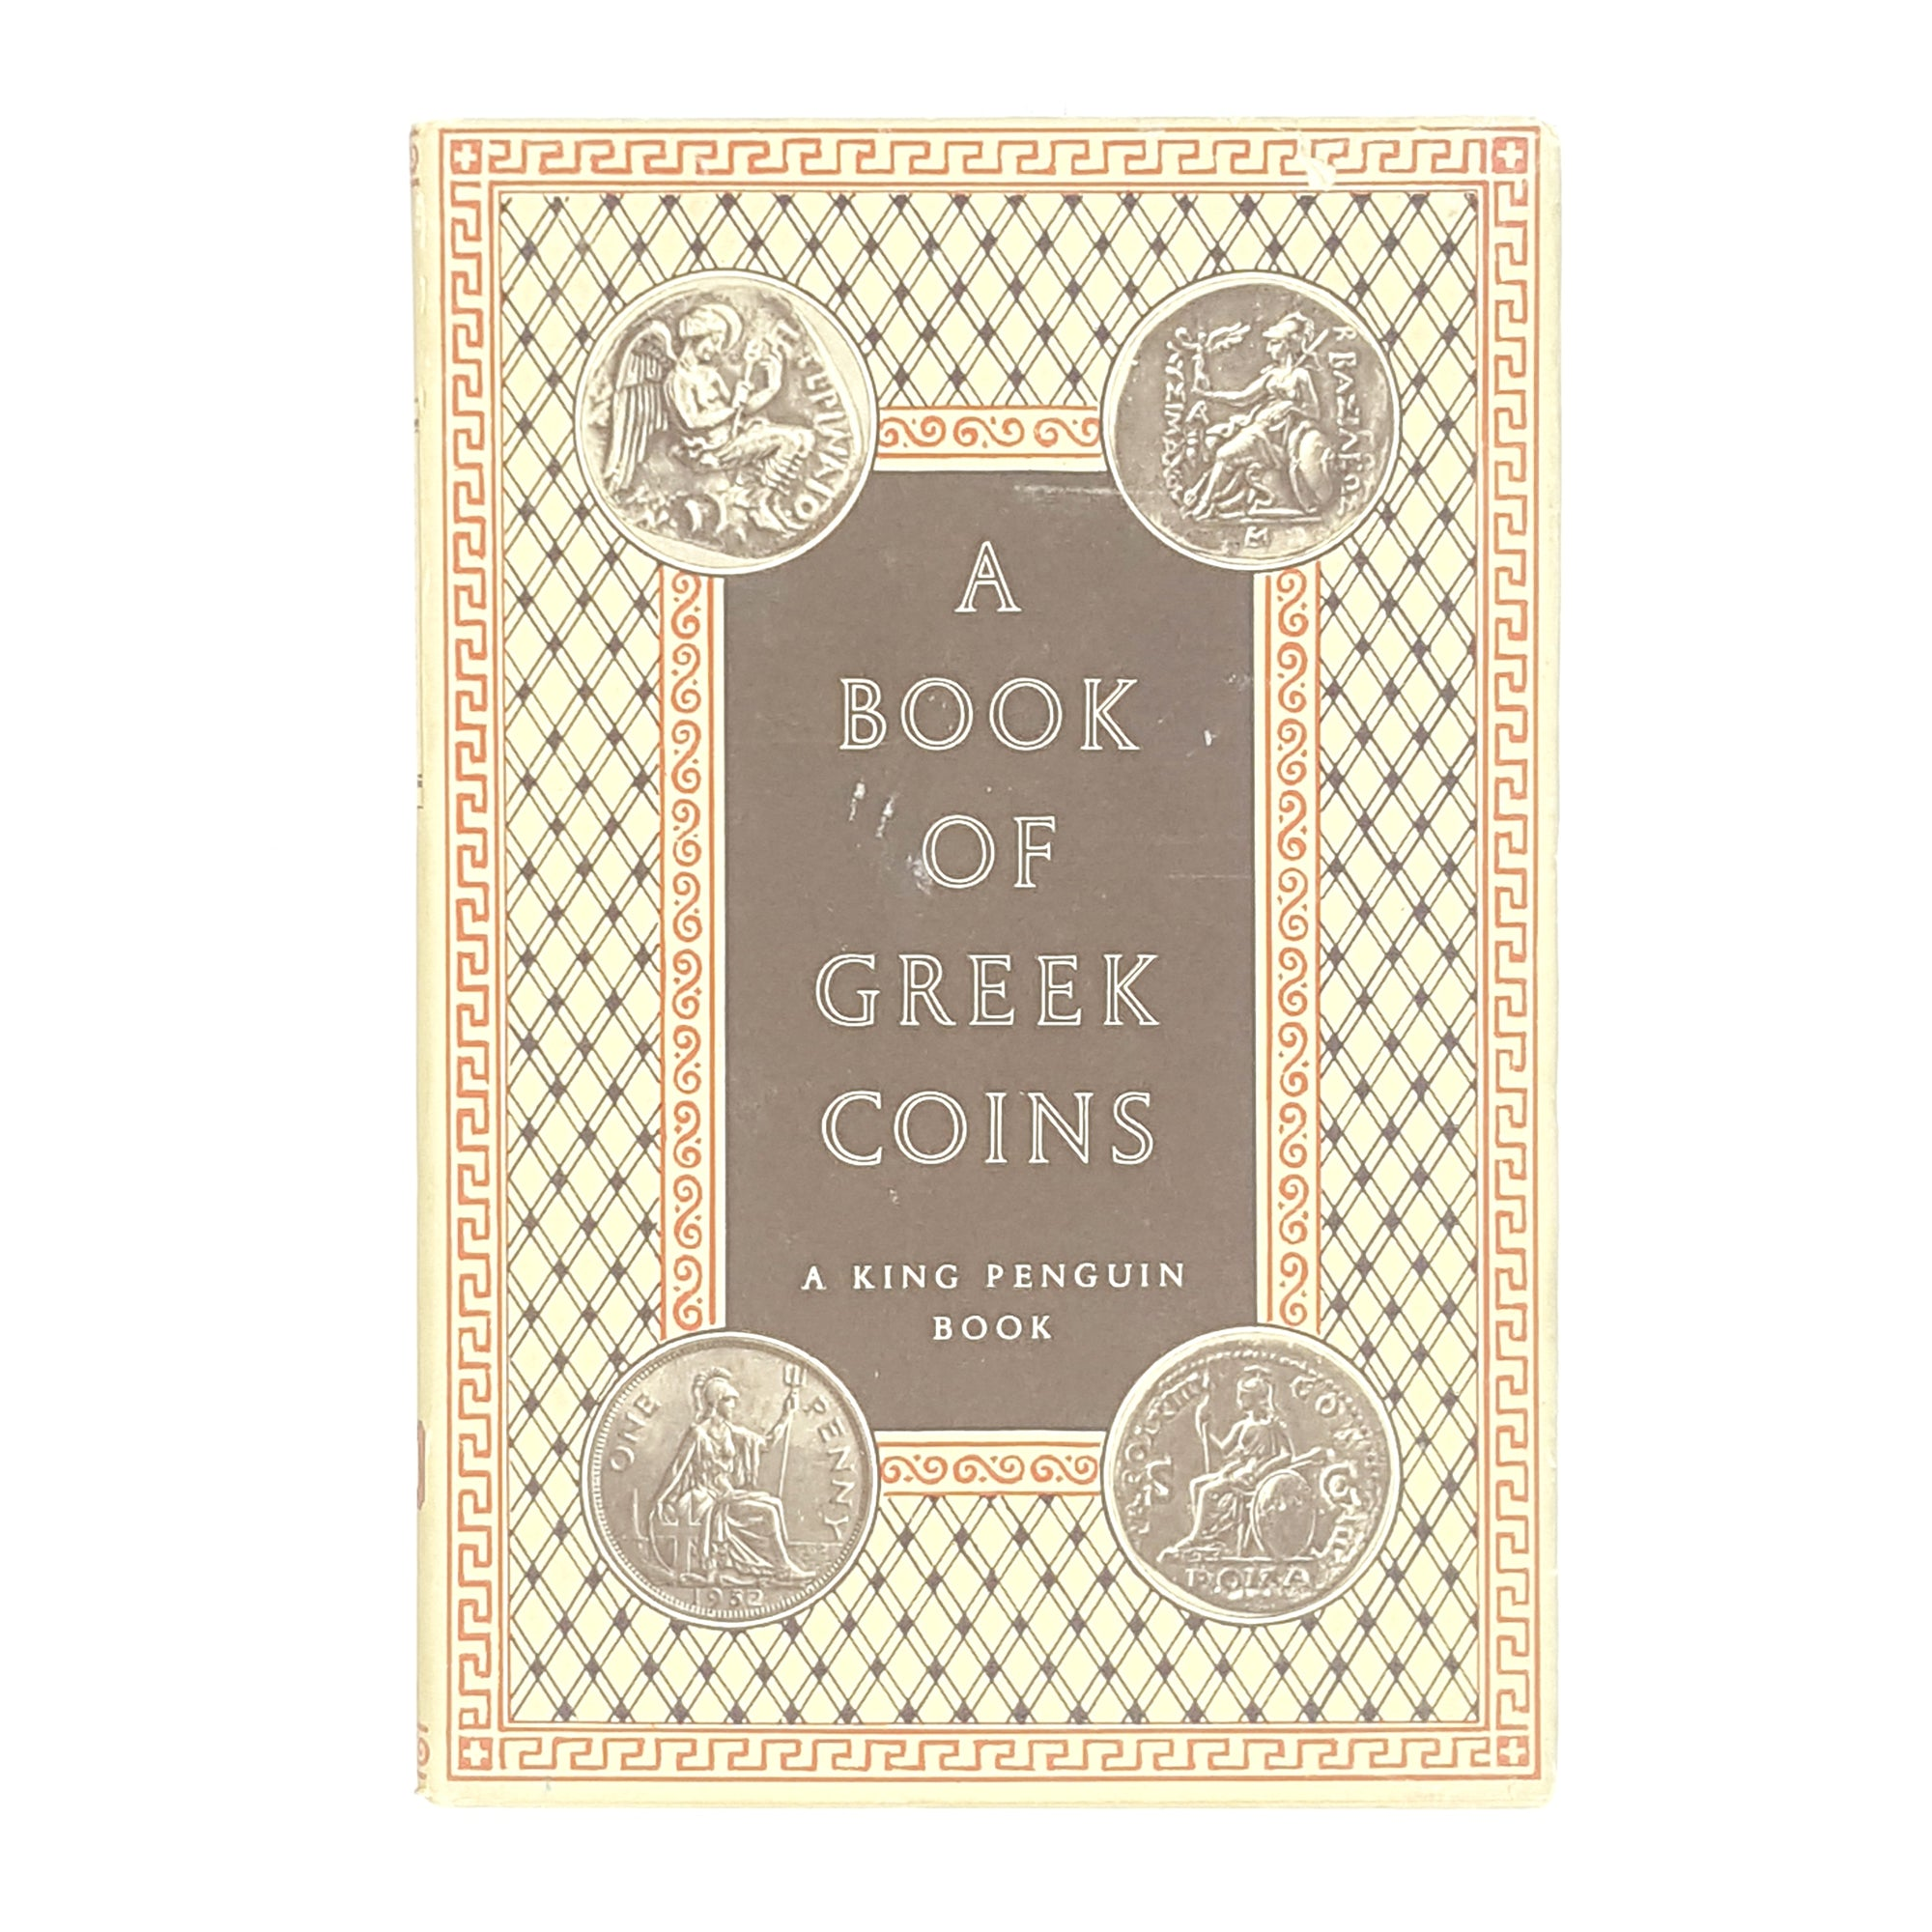 King Penguin: A Book of Greek Coins 1952